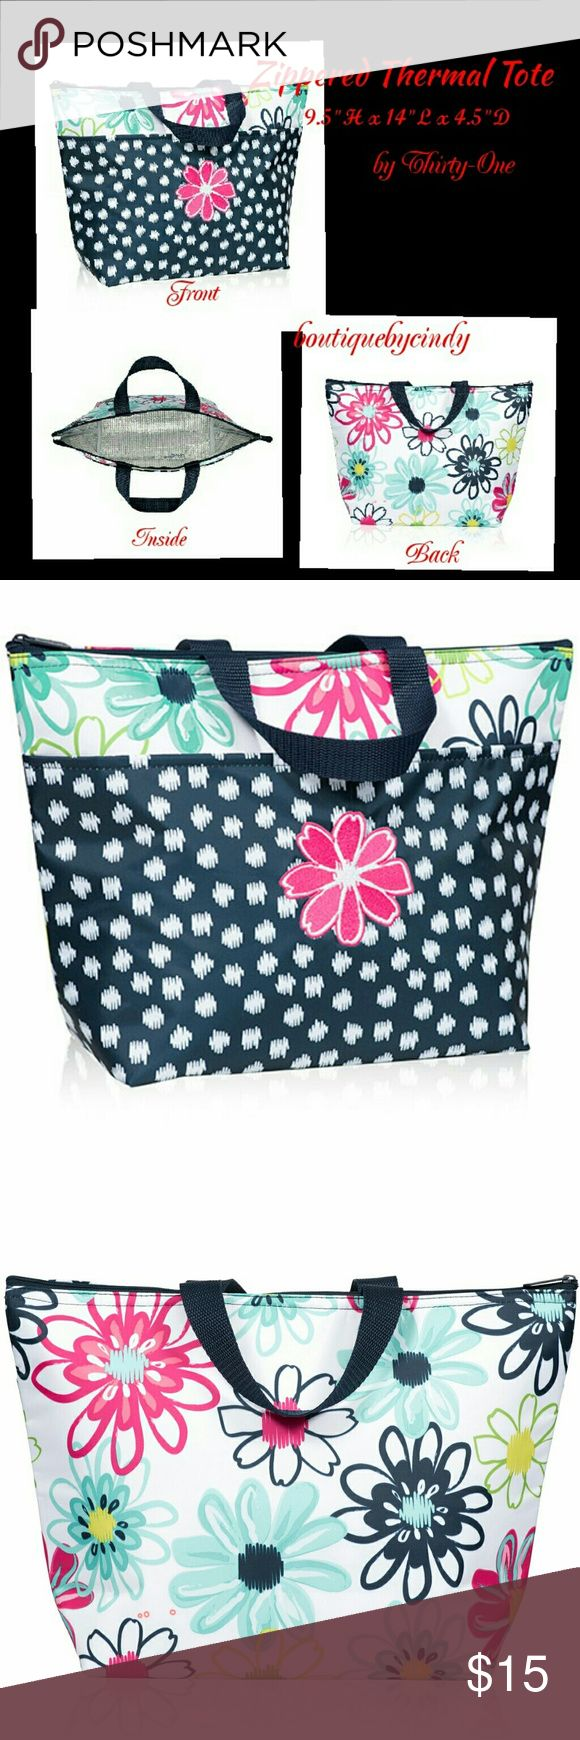 """Thermal Tote by Thirty-One Brand new and unused!    This classic favorite now comes in this FUN Loopsy Daisy Print! It's great for taking lunch on the go. Whether it needs to say warm or cold, it does the job! Great for school, work, ballgame or keeping baby bottles cold. Approx size 9.5""""H x 14""""L x 4.5""""D. Thirty-One  Bags Totes"""